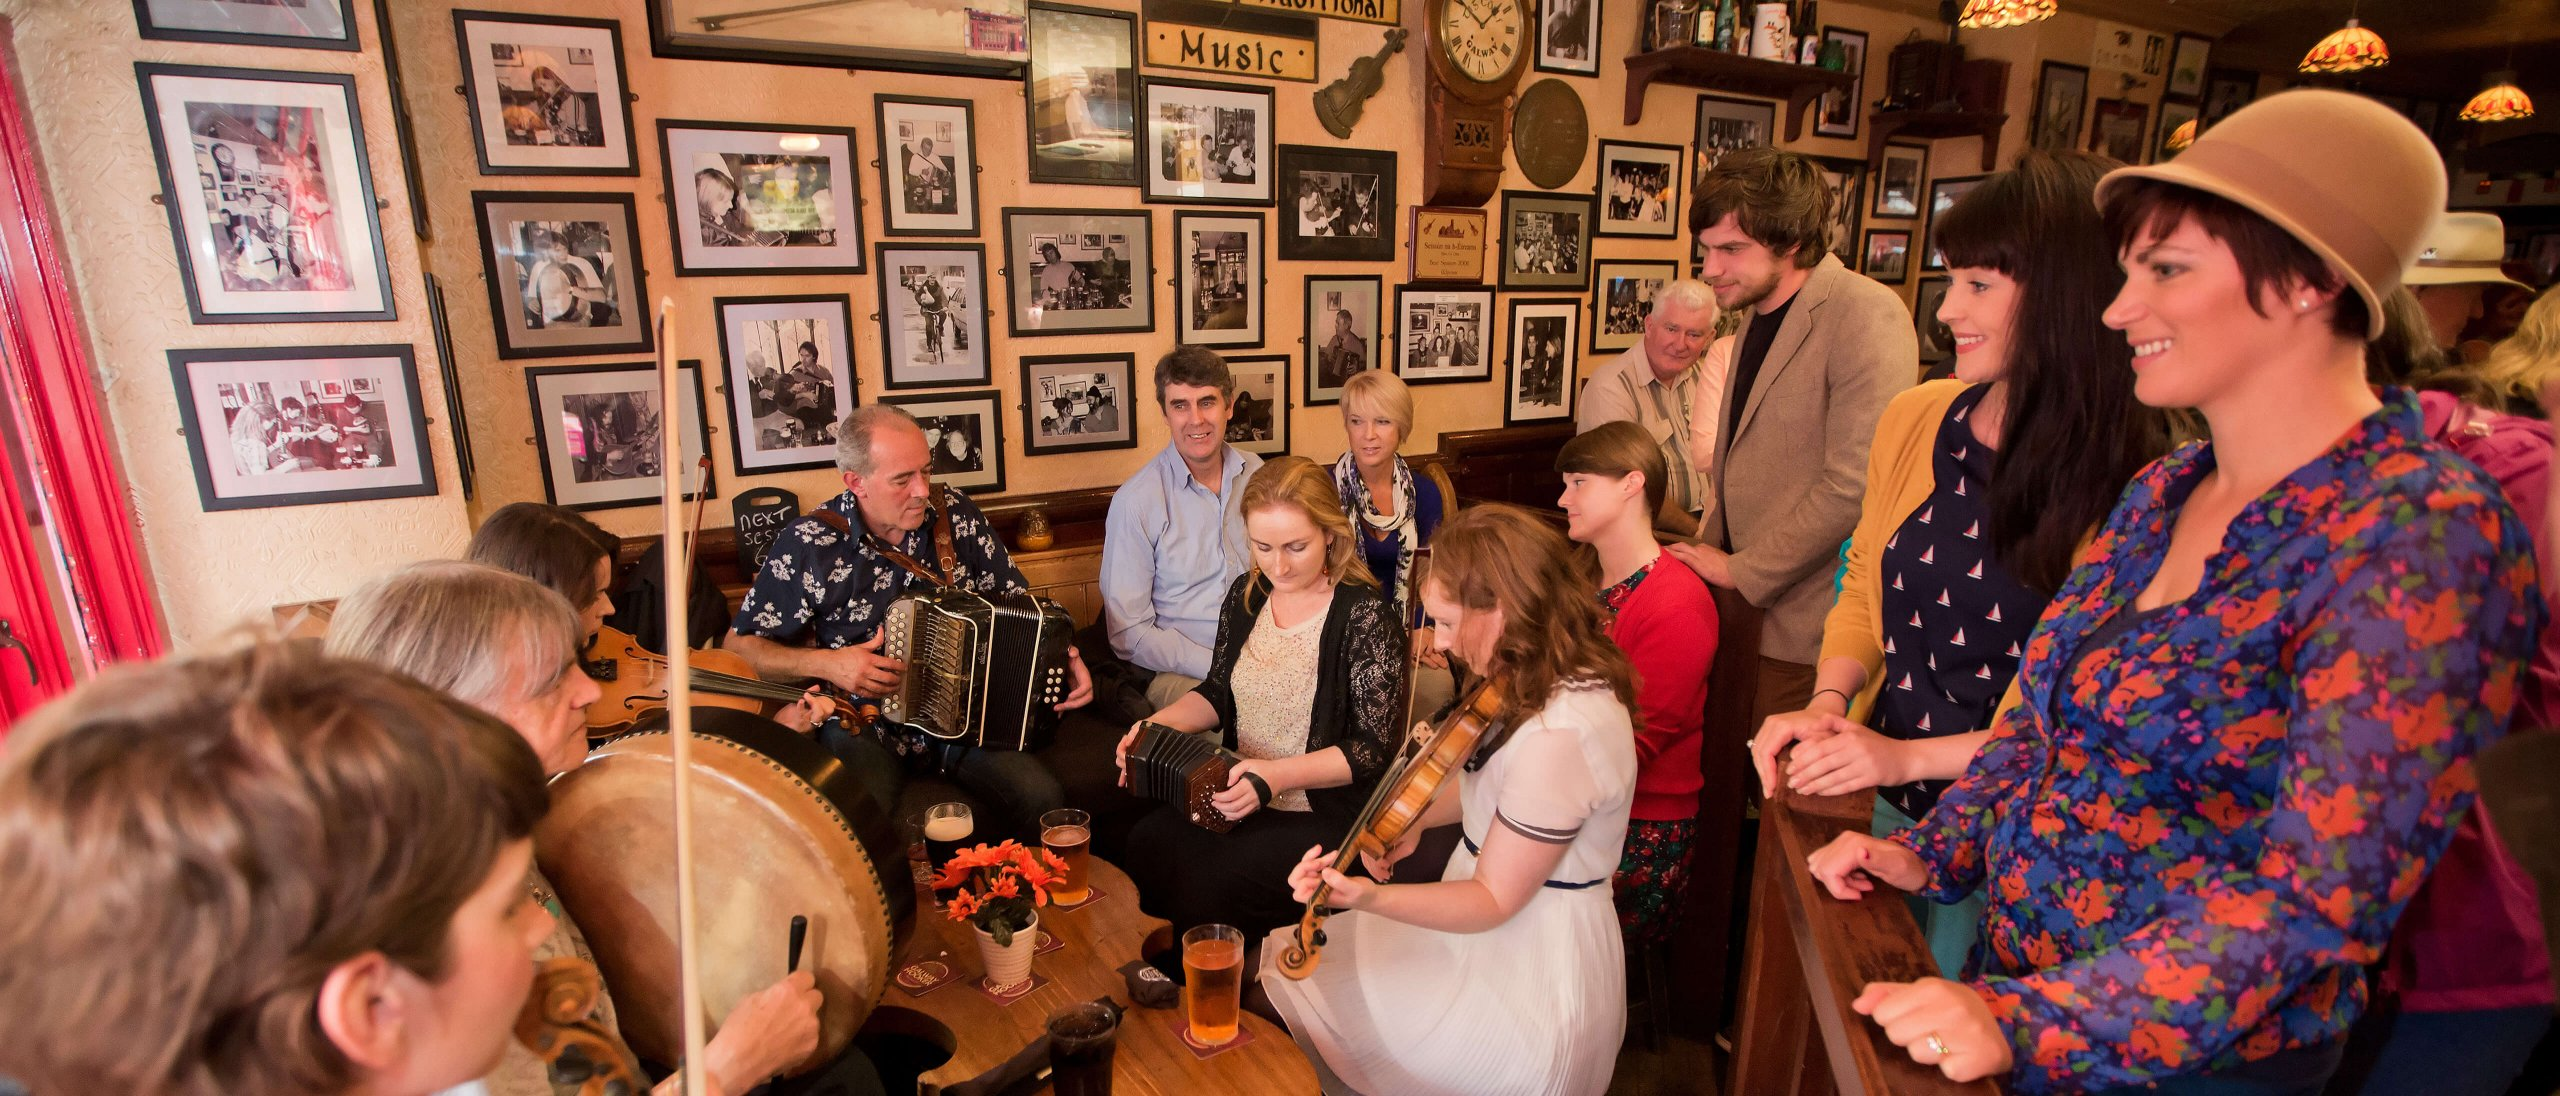 A group of musicians perform traditional Irish music while tourist look on